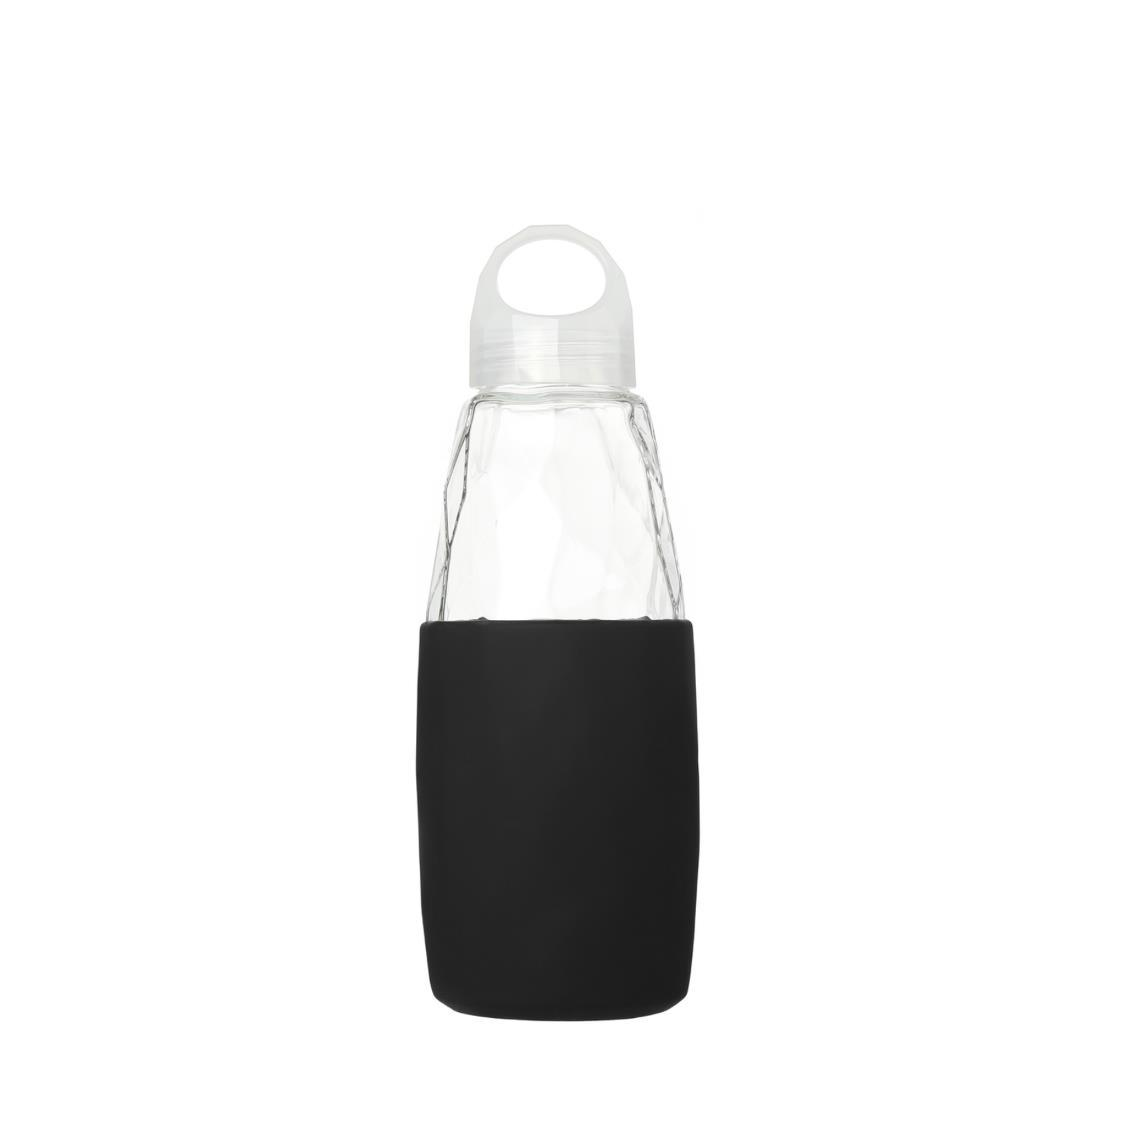 Prism Glass Water Bottle Black 560ml